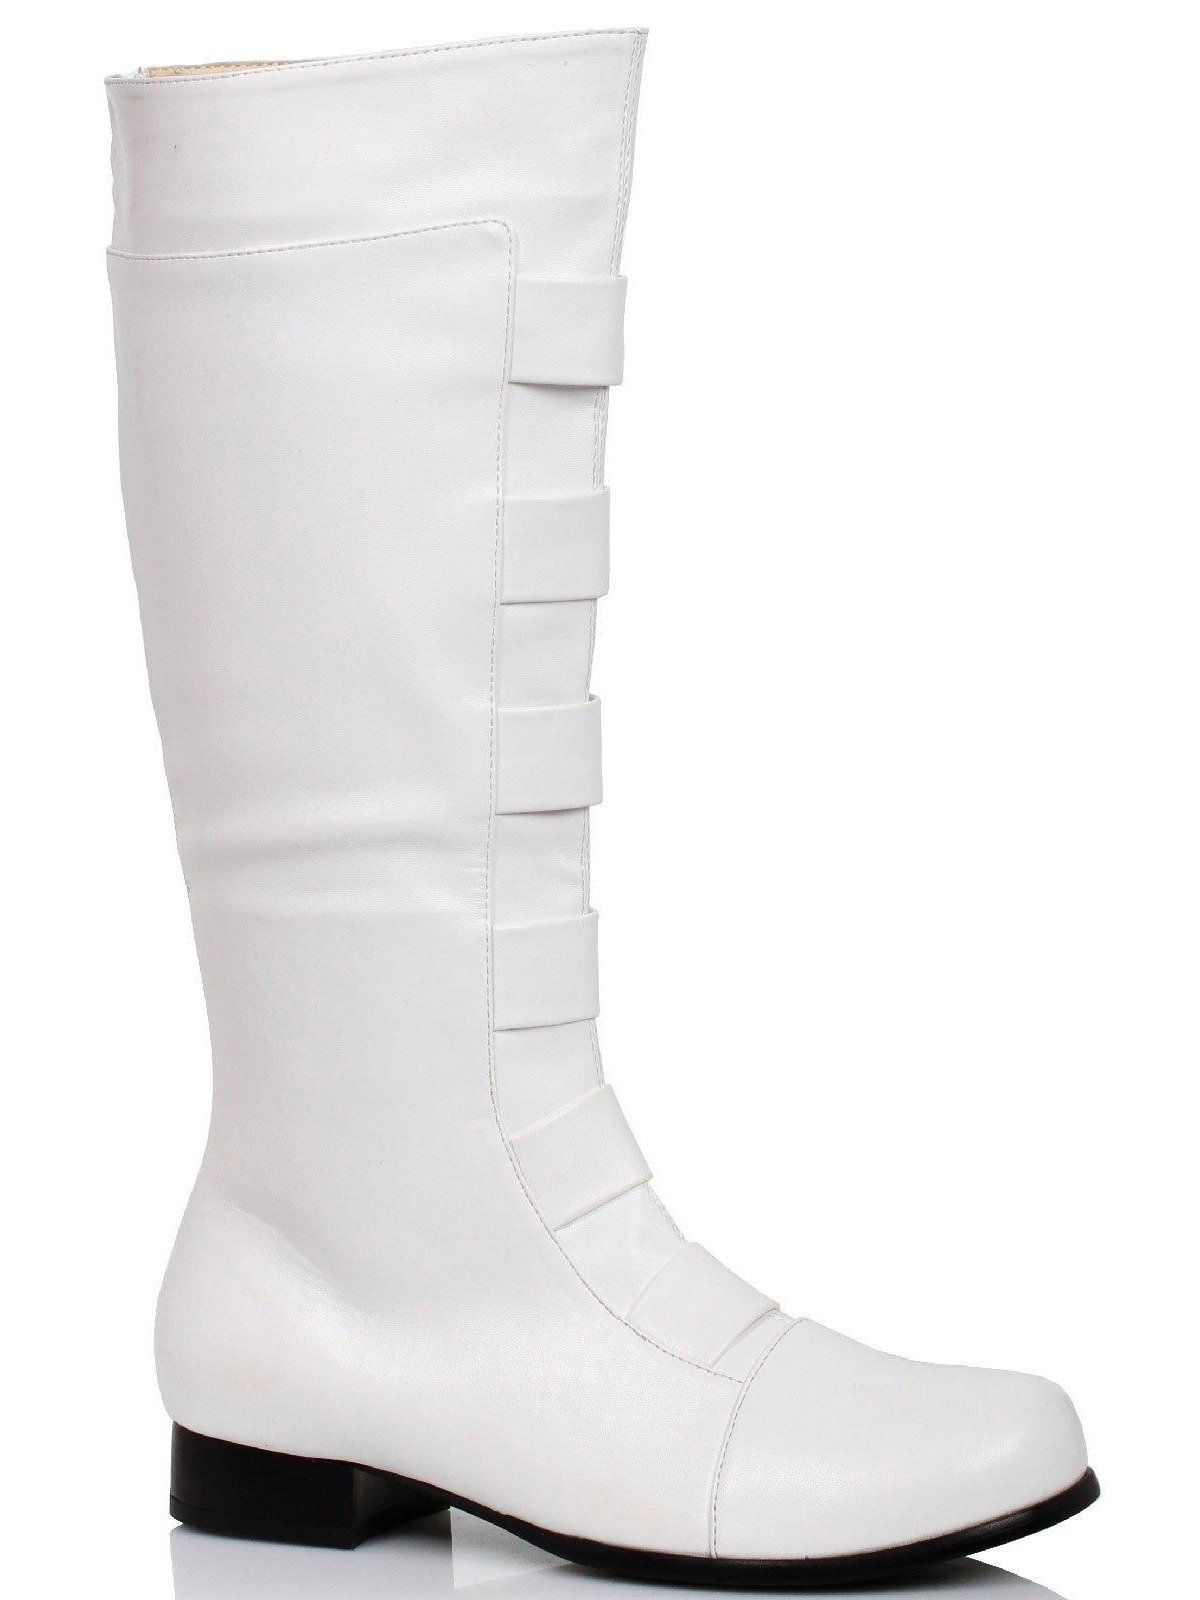 16a3ec63422 White Boots For Men - Costume Accessories for 2018 | Wholesale ...